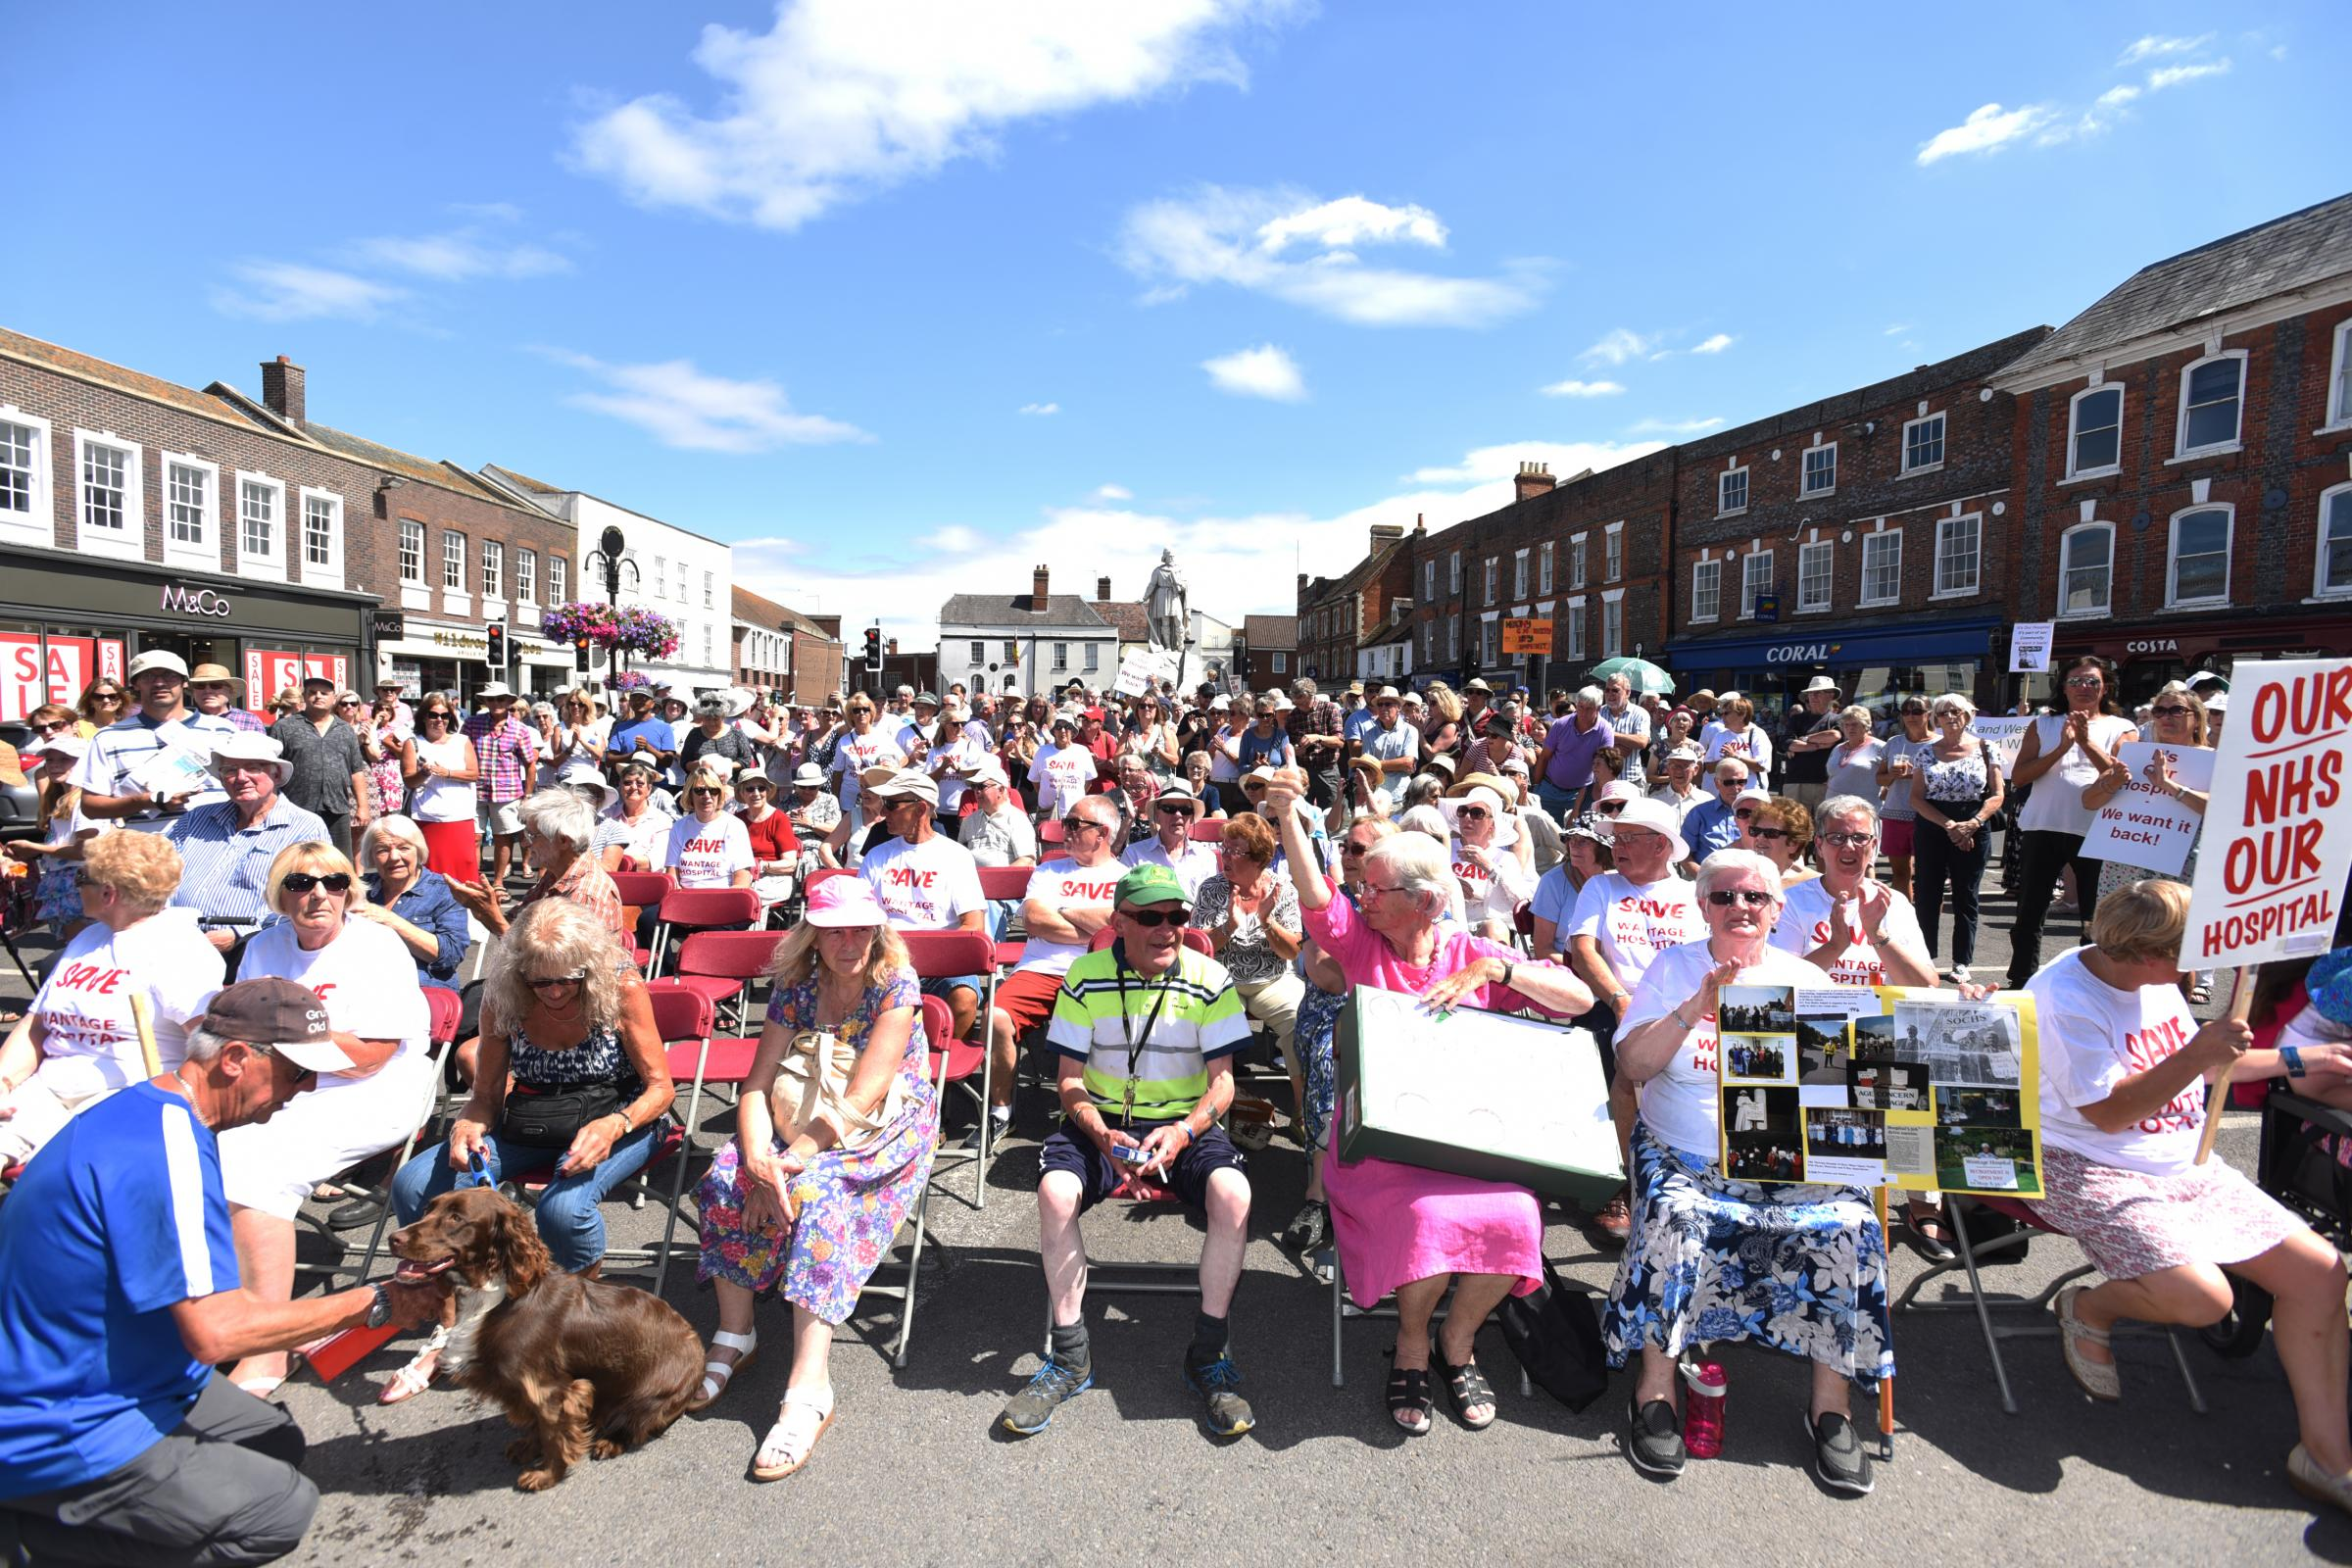 MARCHING: Residents from across Wantage and Grove marched through the town and Rally at market square to protest the 'temporary' closure of the community hospital. Picture: Richard Cave